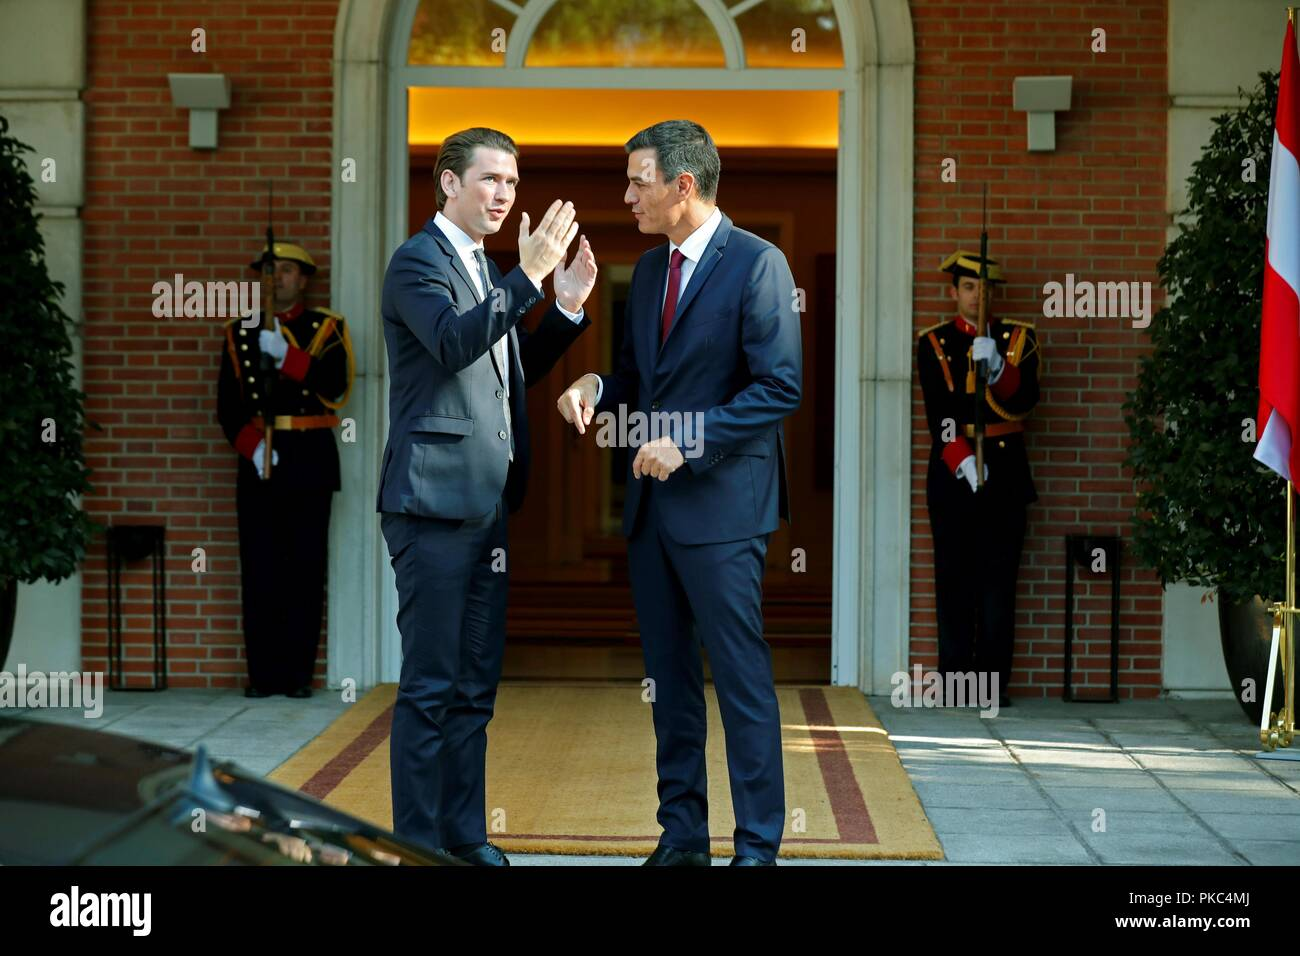 ¿Cuánto mide Pedro Sánchez? - Altura - Real height - Página 4 Spanish-prime-minister-pedro-sanchez-r-welcomes-with-his-austrian-counterpart-sebastian-kurz-l-before-a-meeting-at-la-moncloa-palace-in-madrid-spain-12-september-2018-efekiko-huesca-PKC4MJ